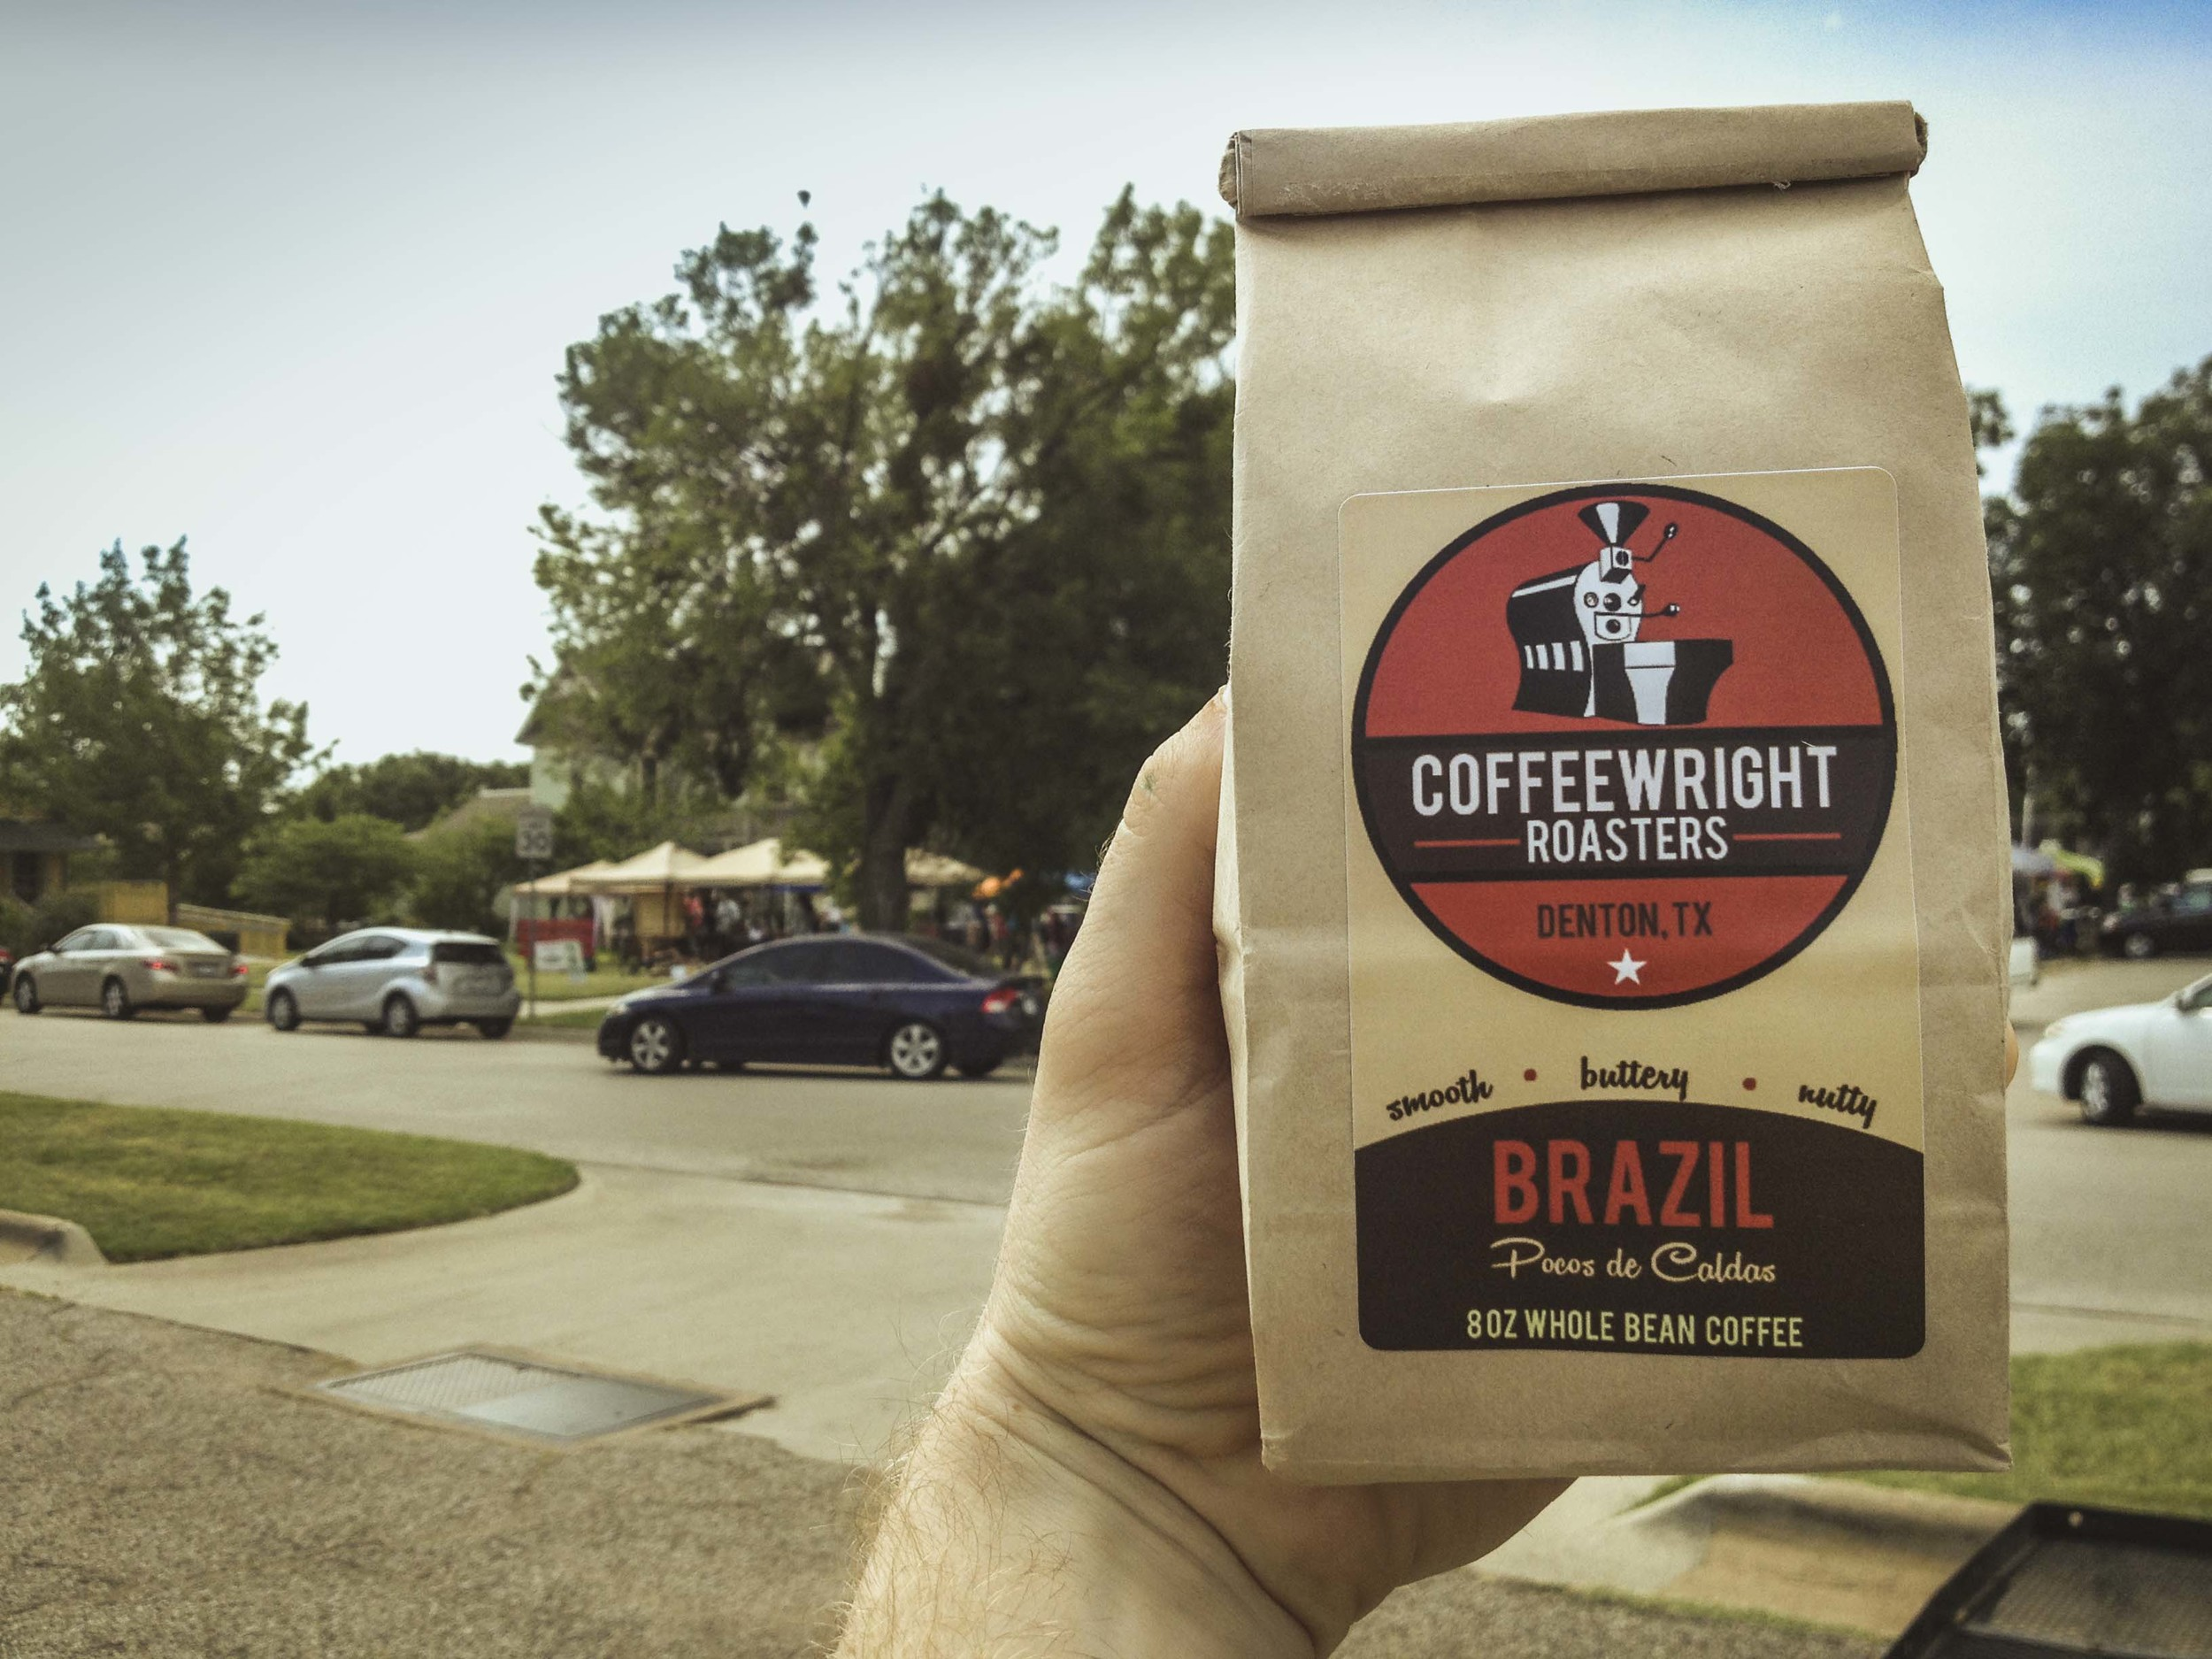 Saturday we headed over to the market and grabbed a bag of beans from the new Coffeewright roasters in town. We'll keep you updated with our thoughts on 'em!